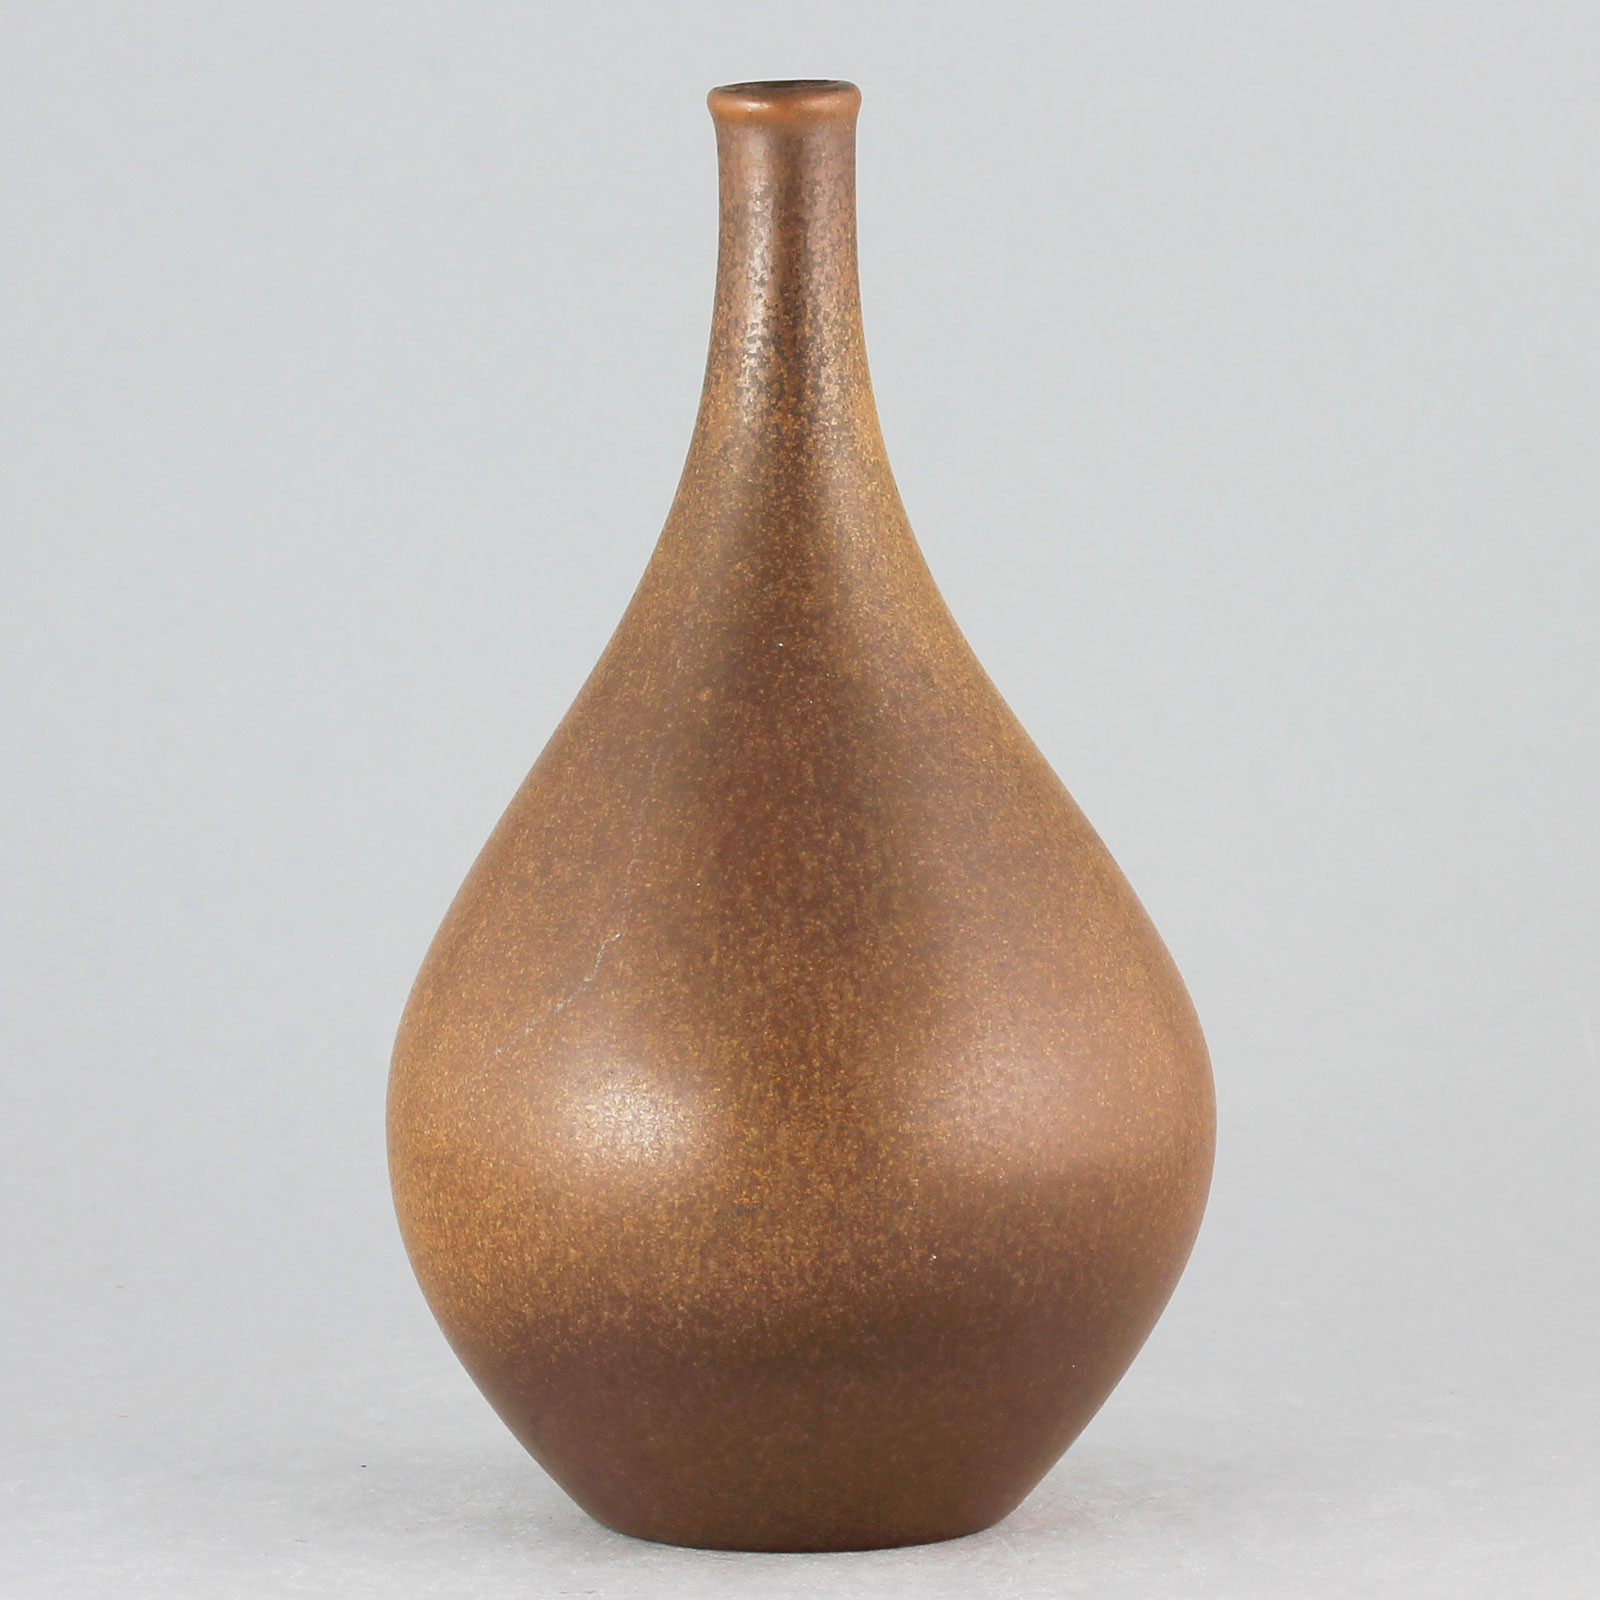 art deco blue vase of stig lindberg vitrin 1956 striking brown raindrop vase inside 159573073 origpic ba88ba